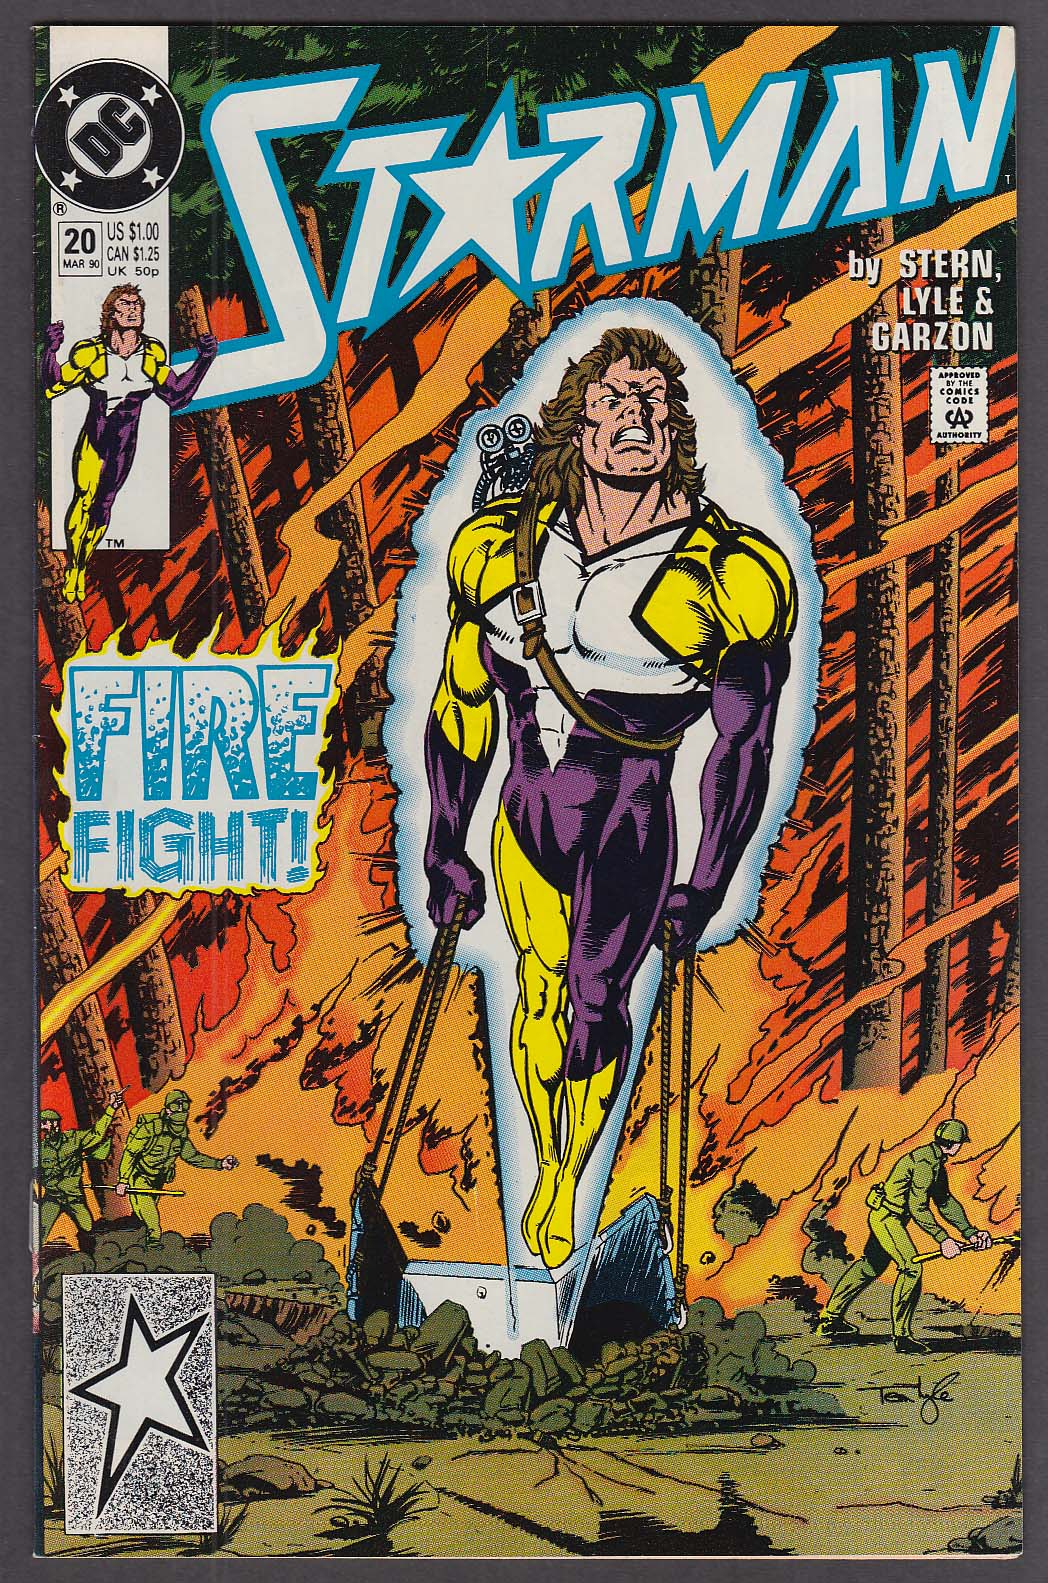 STARMAN #20 DC comic book 3 1990